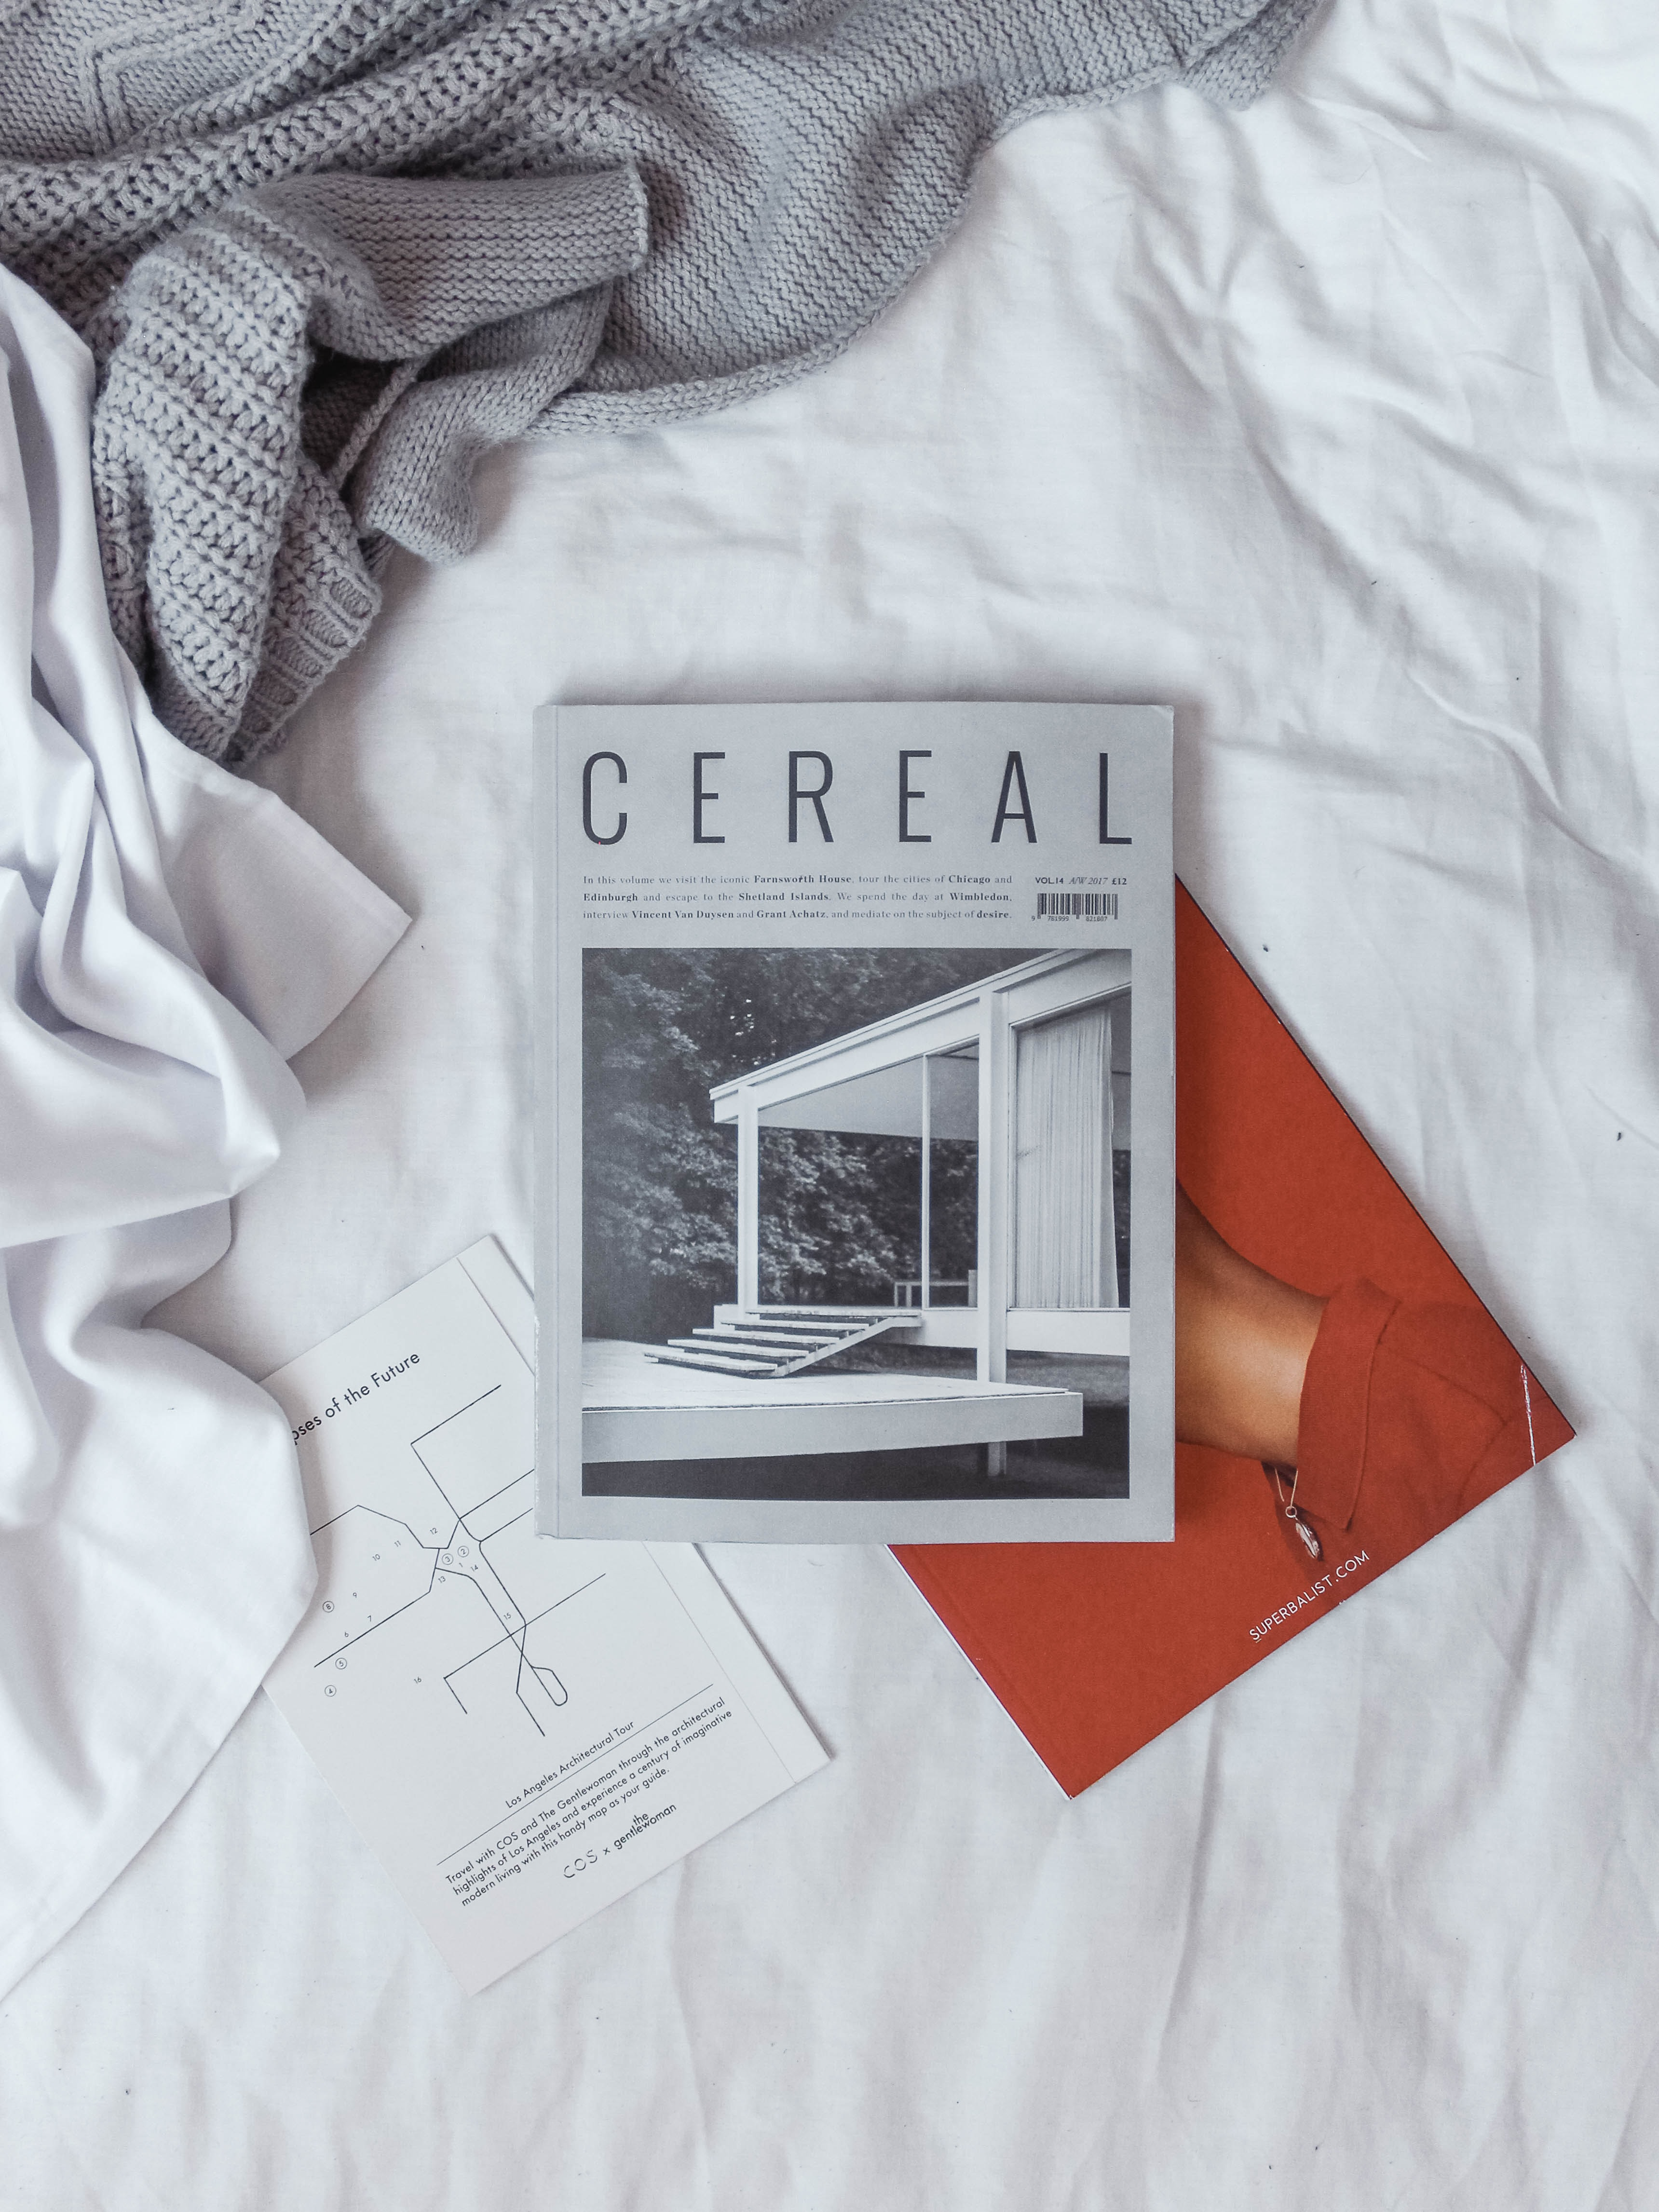 Cereal book on white textile